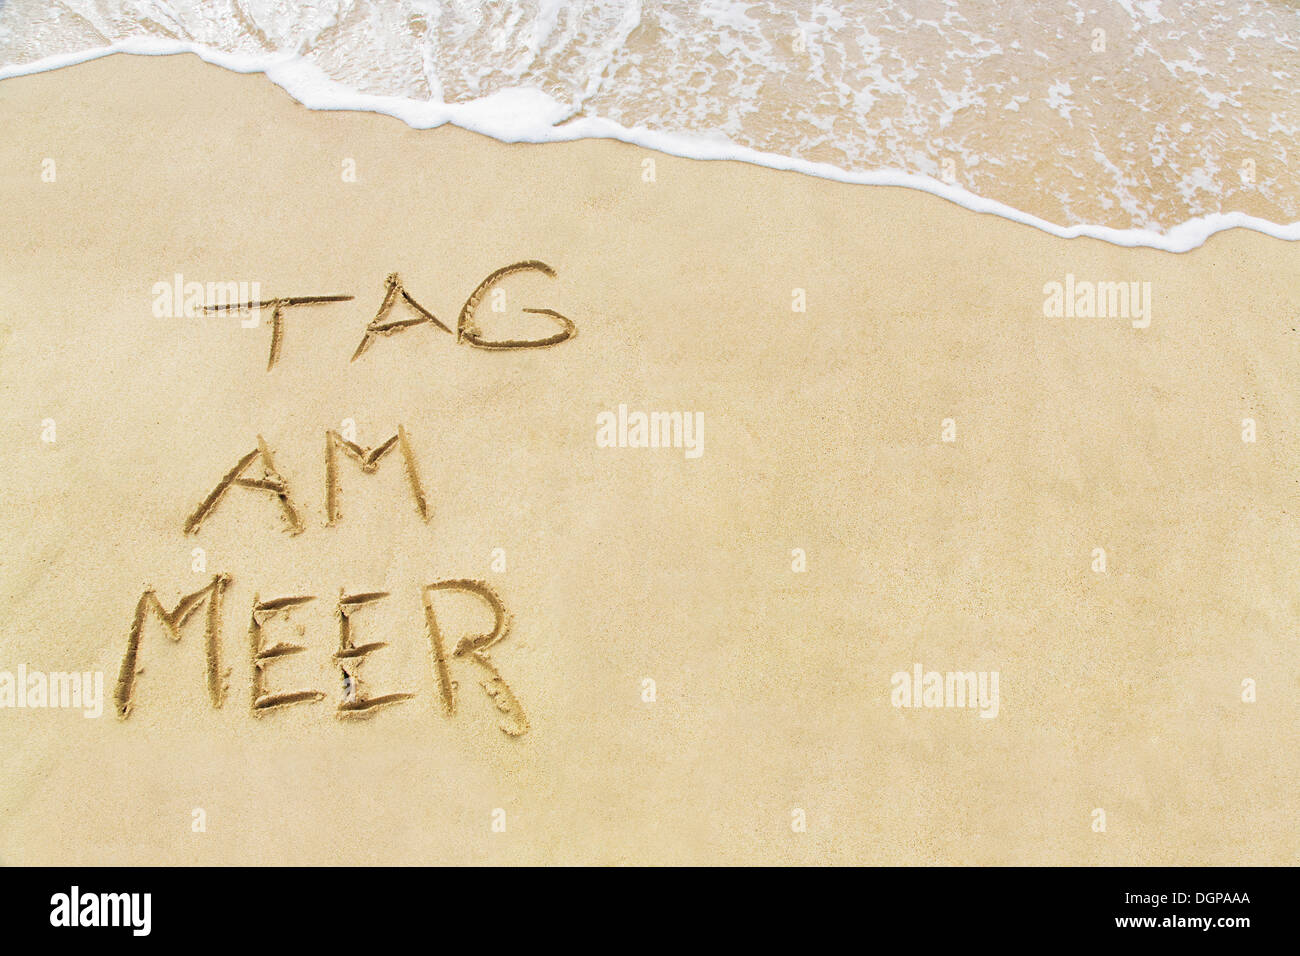 Tag am Meer, German for Day by the Sea, written in the sand on a beach, Lanzarote, Canary Islands, Spain, Europe Stock Photo